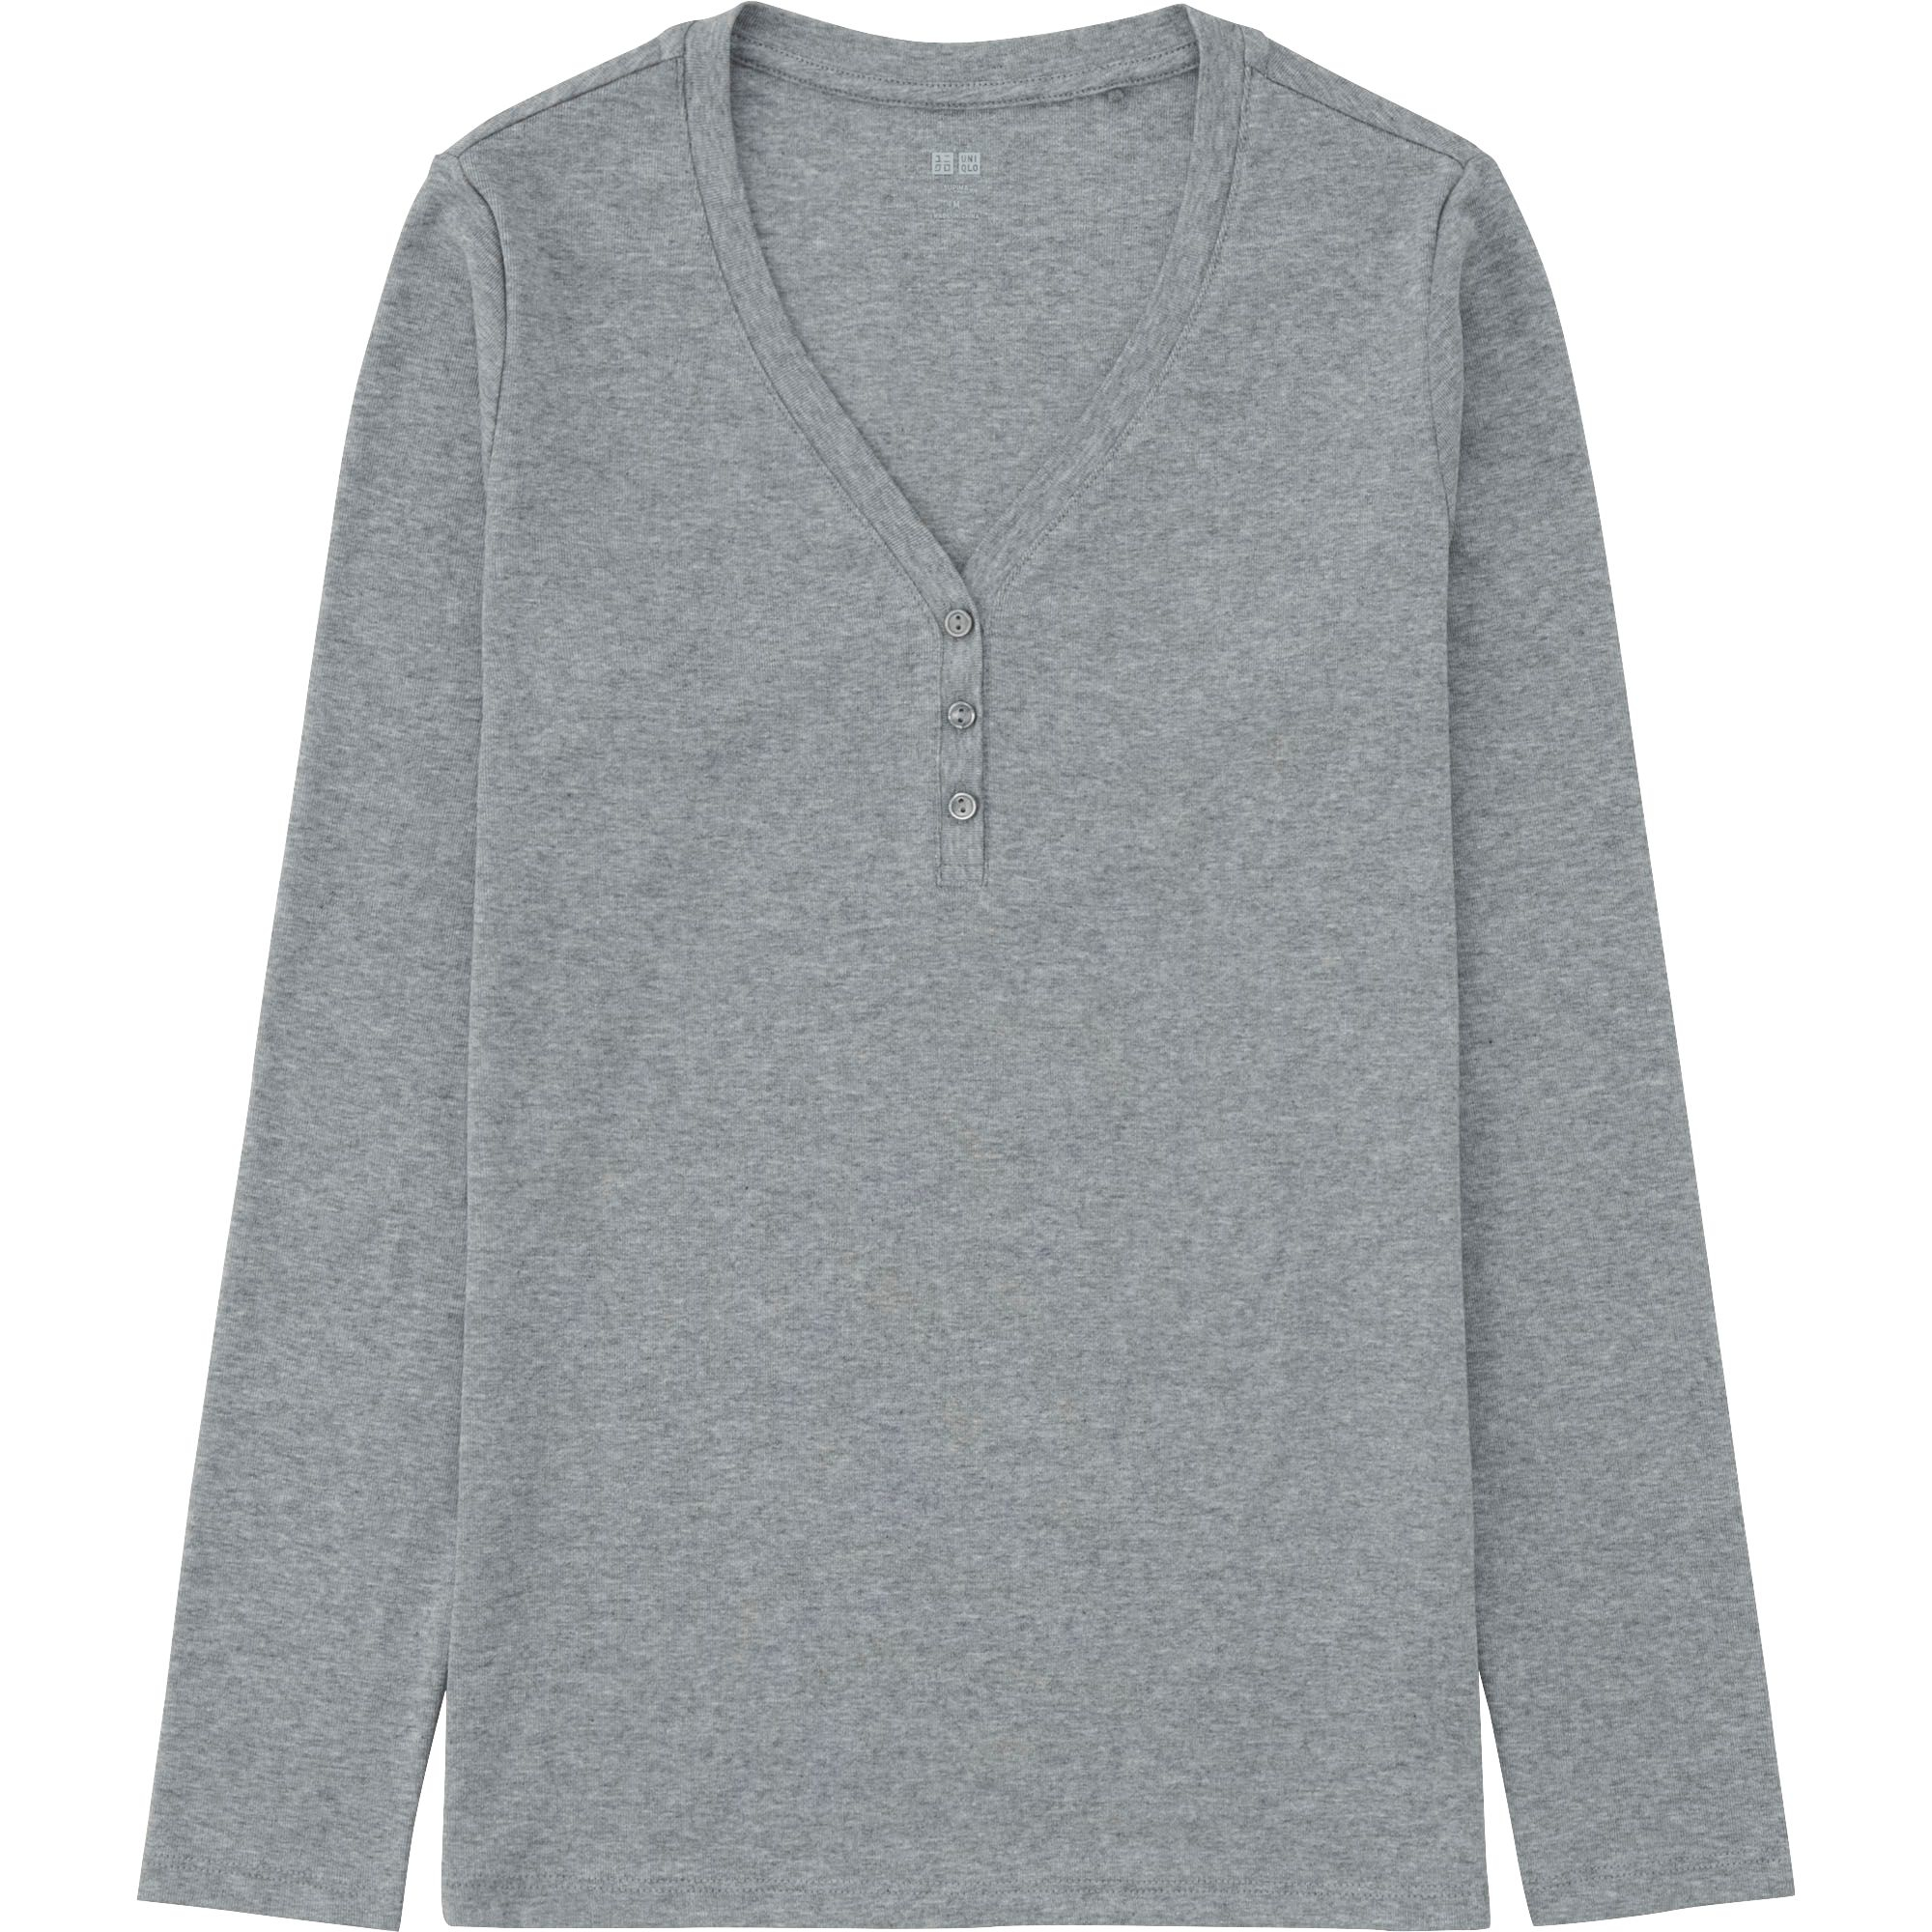 Uniqlo women supima cotton modal henley neck long sleeve t for Women s cotton henley shirts